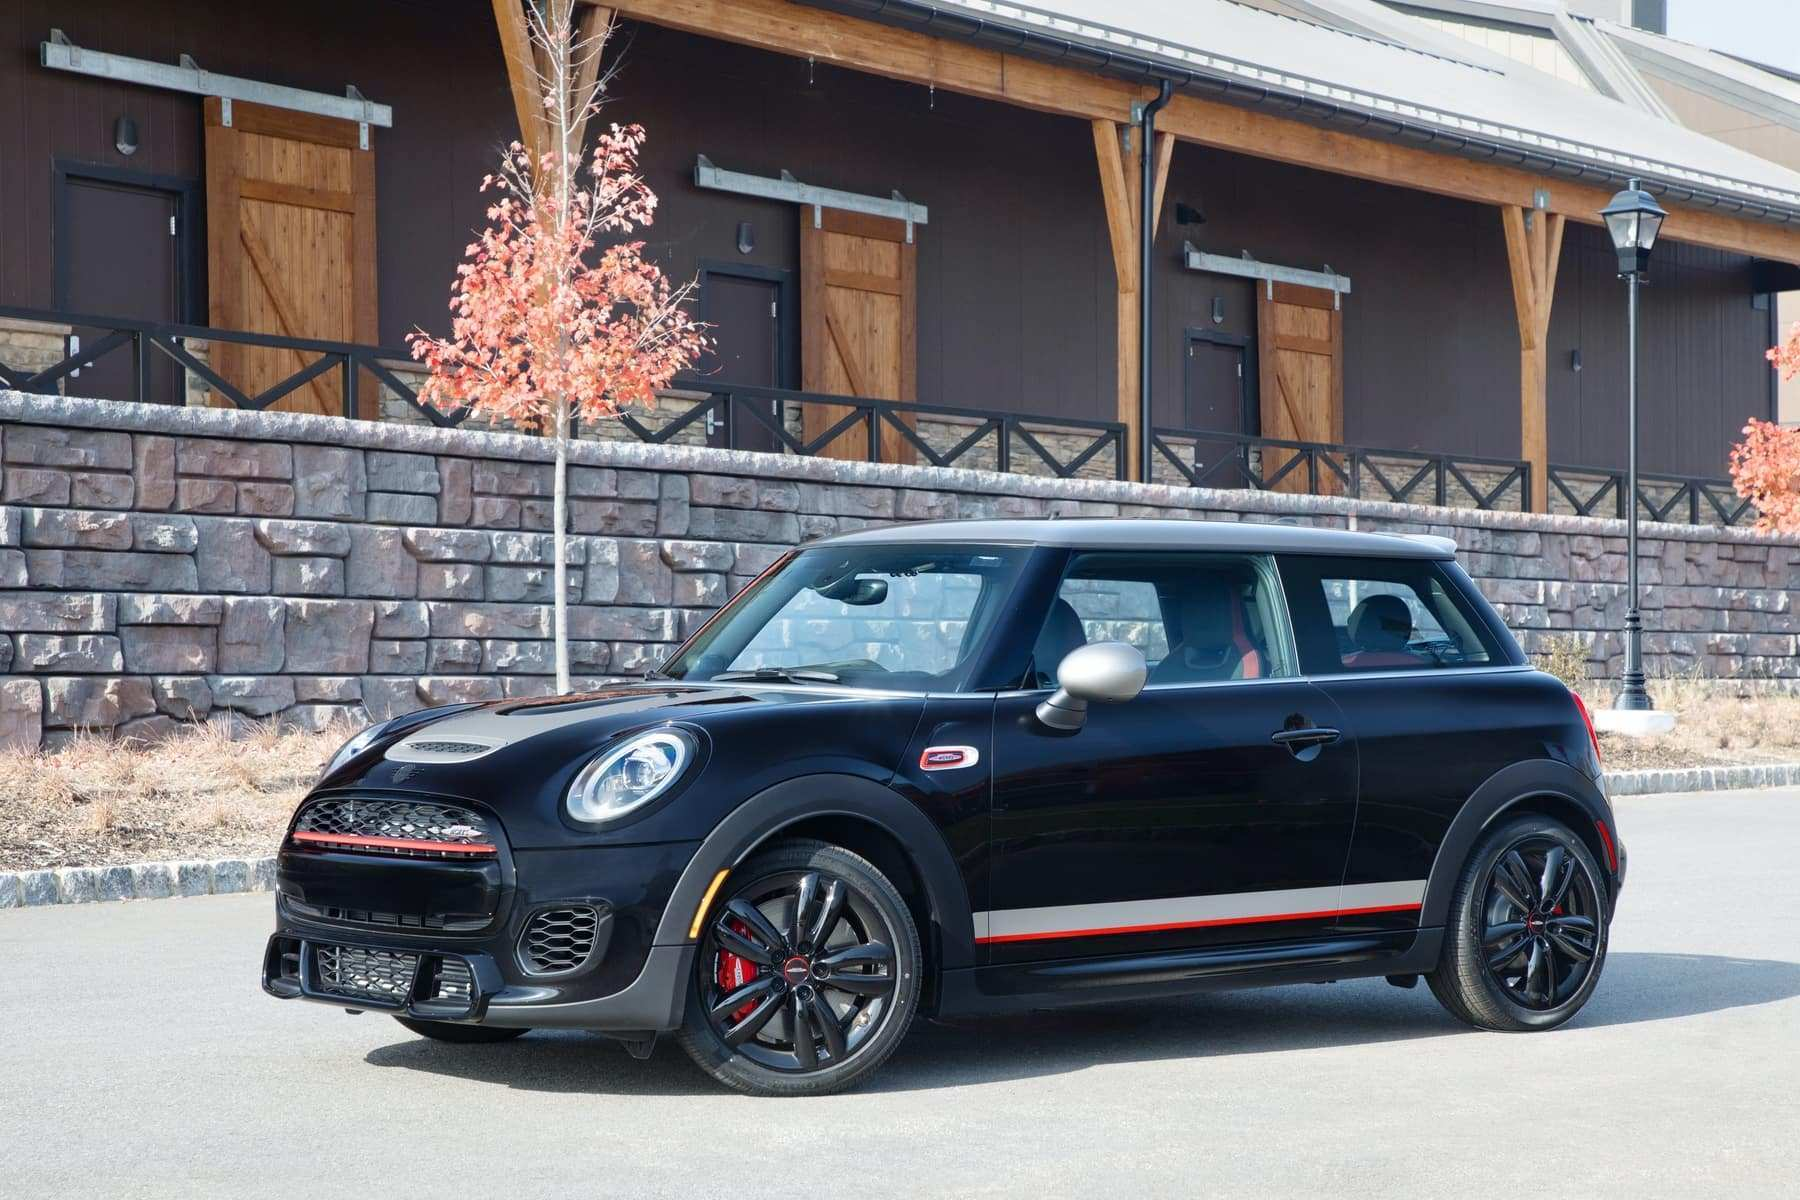 88 All New 2019 Mini Jcw Specs Concept And Review